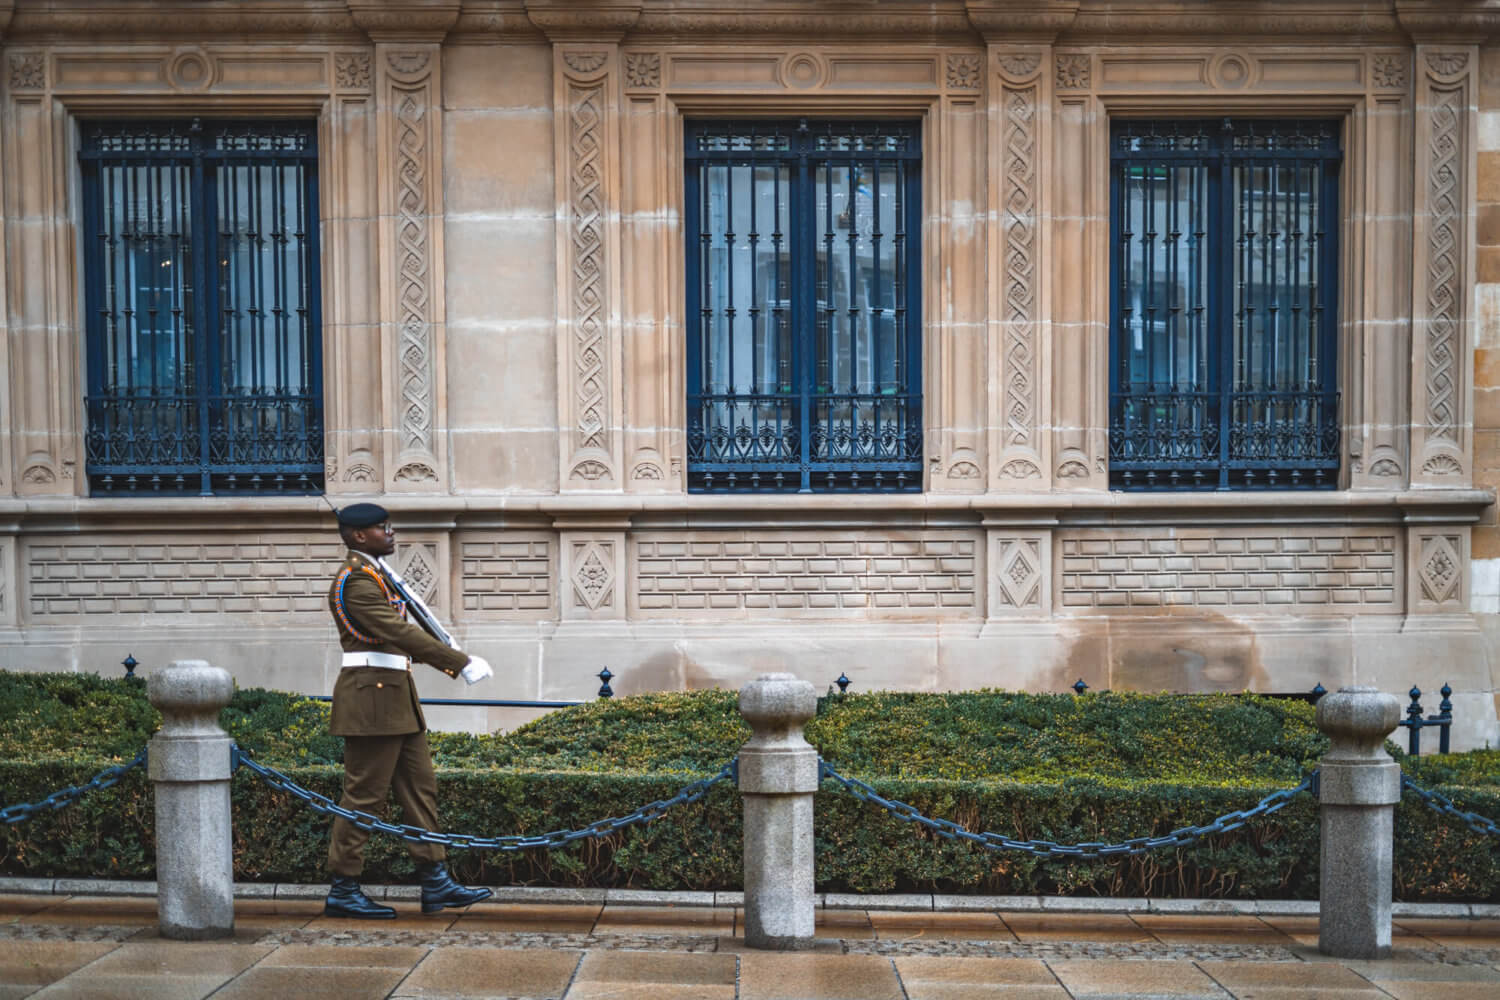 A marching guard in front of the Grand Duchal Palace in Luxembourg City